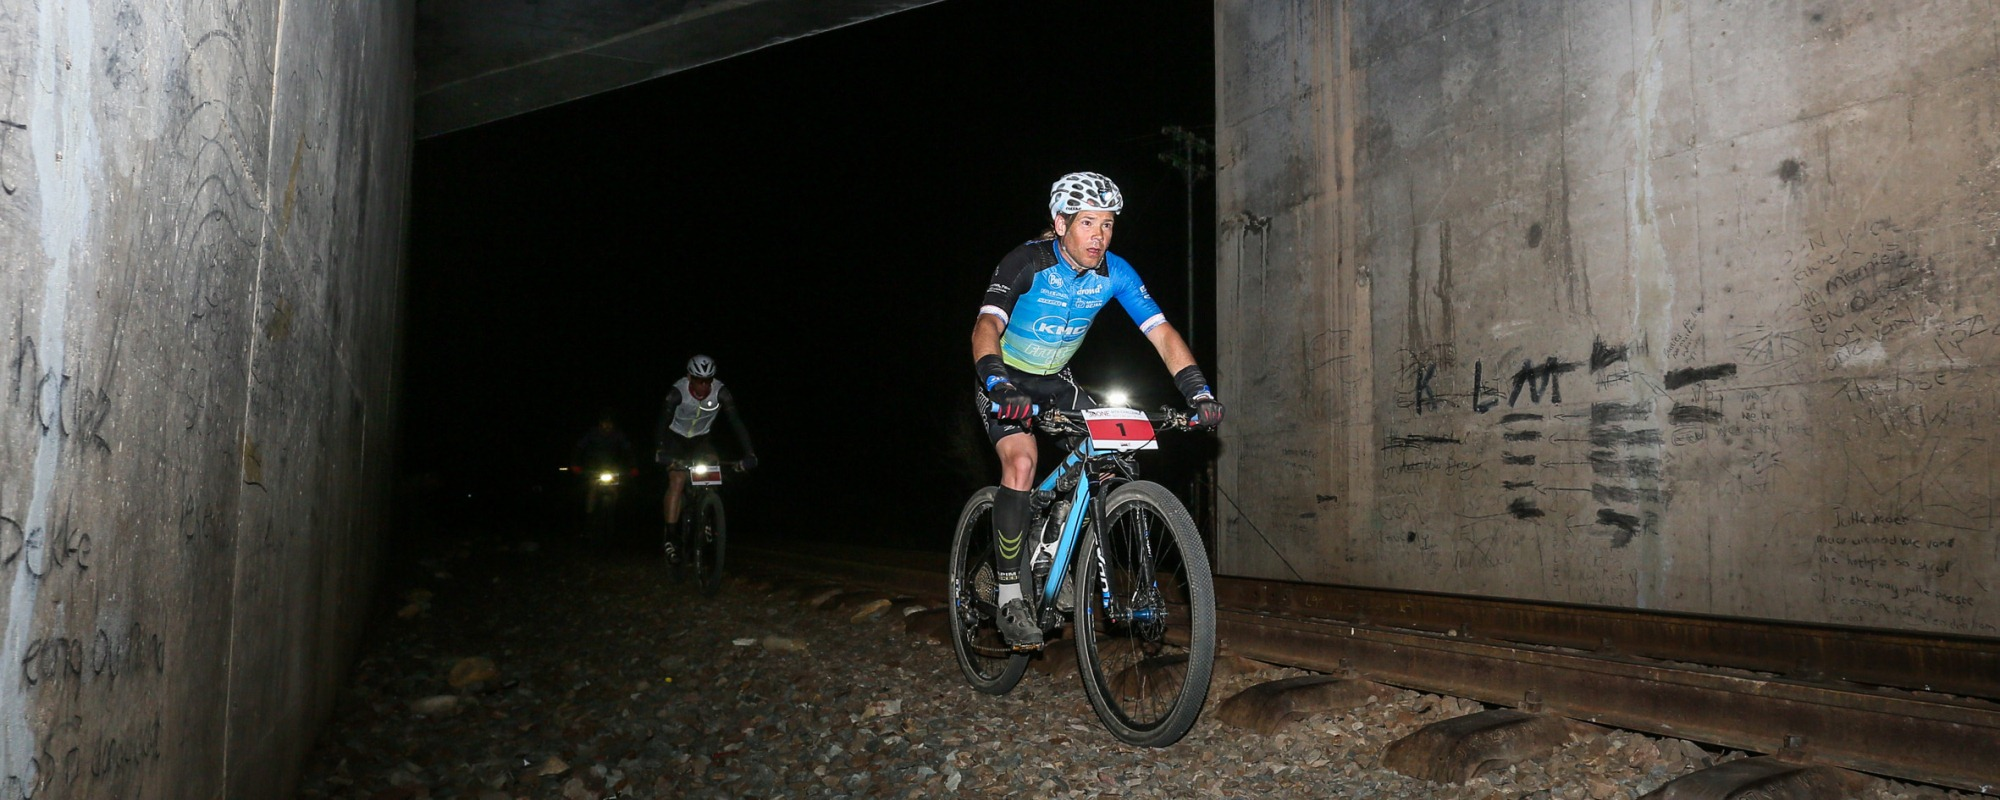 Ramses Bekkenk to second victory in the 36ONE MTB Challenge